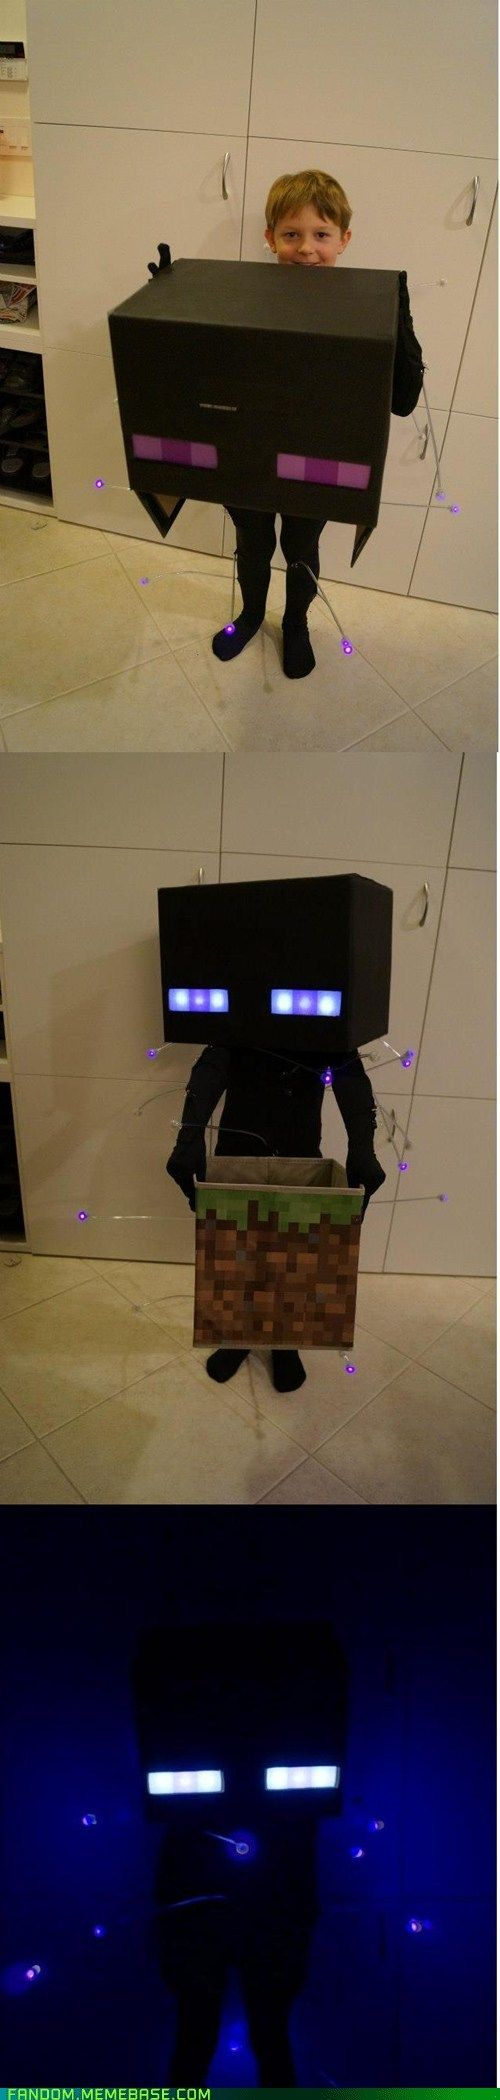 Glowing Enderman Costume - My daughter would LOVE this costume